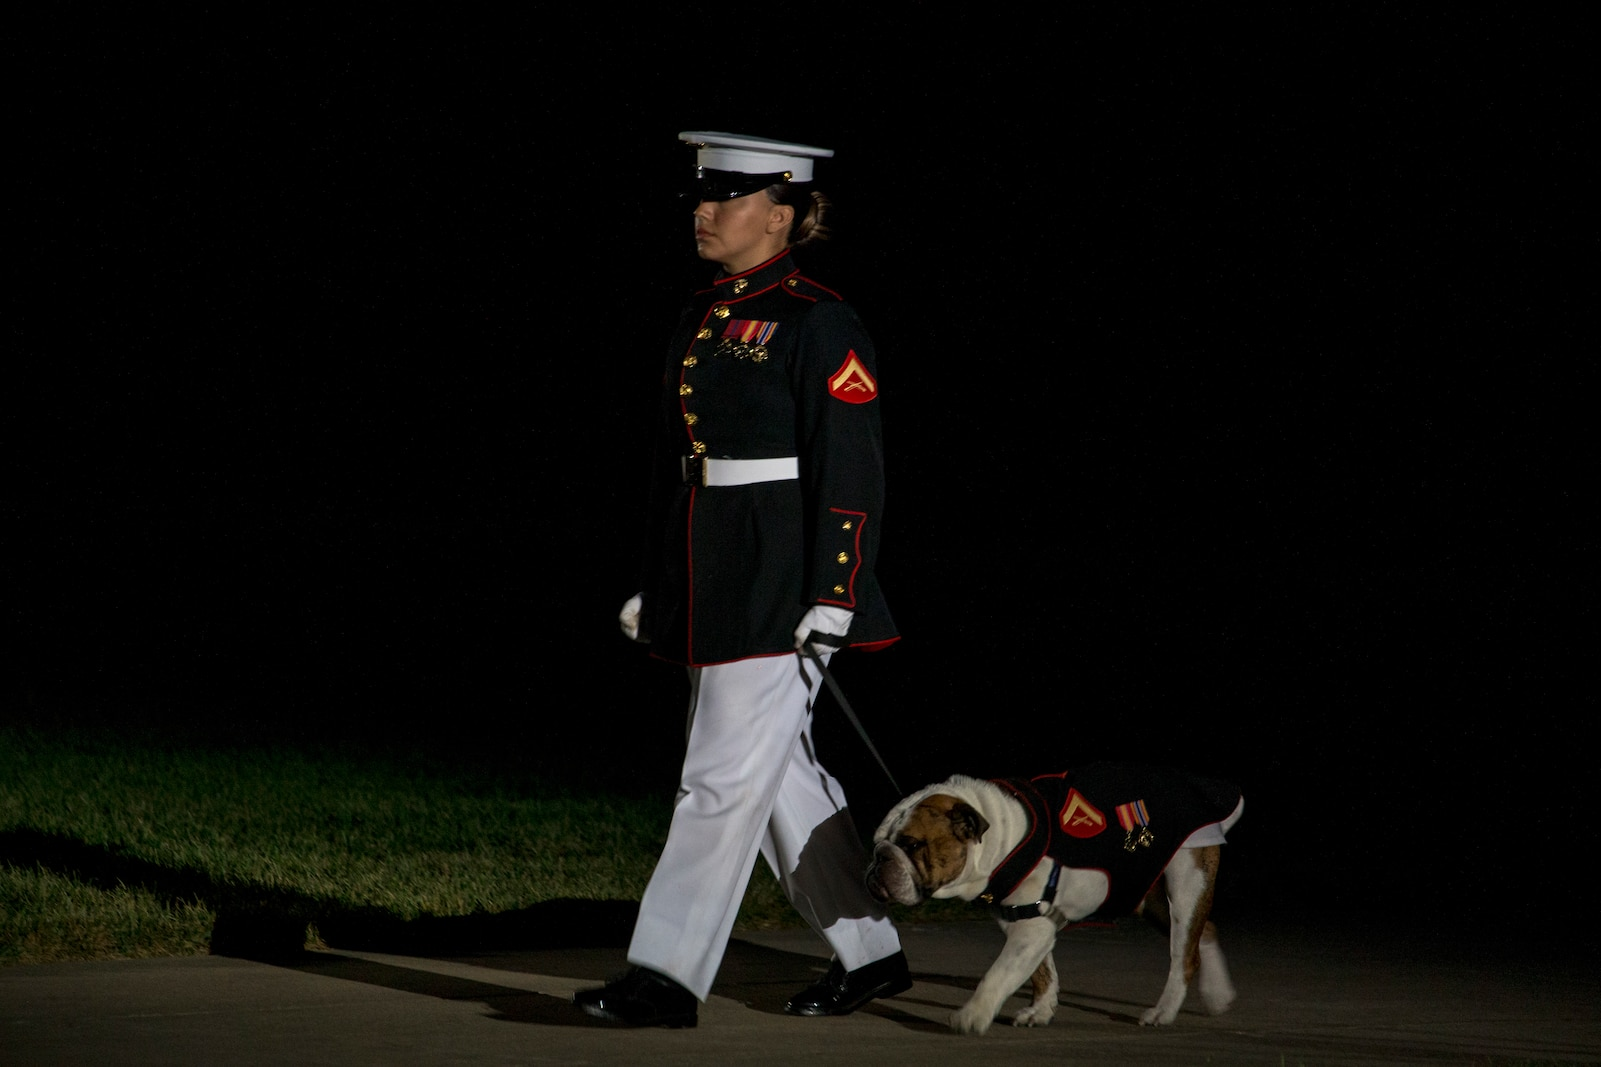 Lance Cpl. Rebecca Tongson, mascot handler, Marine Barracks Washington, walks down Center Walk with the official Marine Corps mascot, Lance Cpl. Chesty XV, during the Friday Evening Parade at MBW, July 23, 2021.